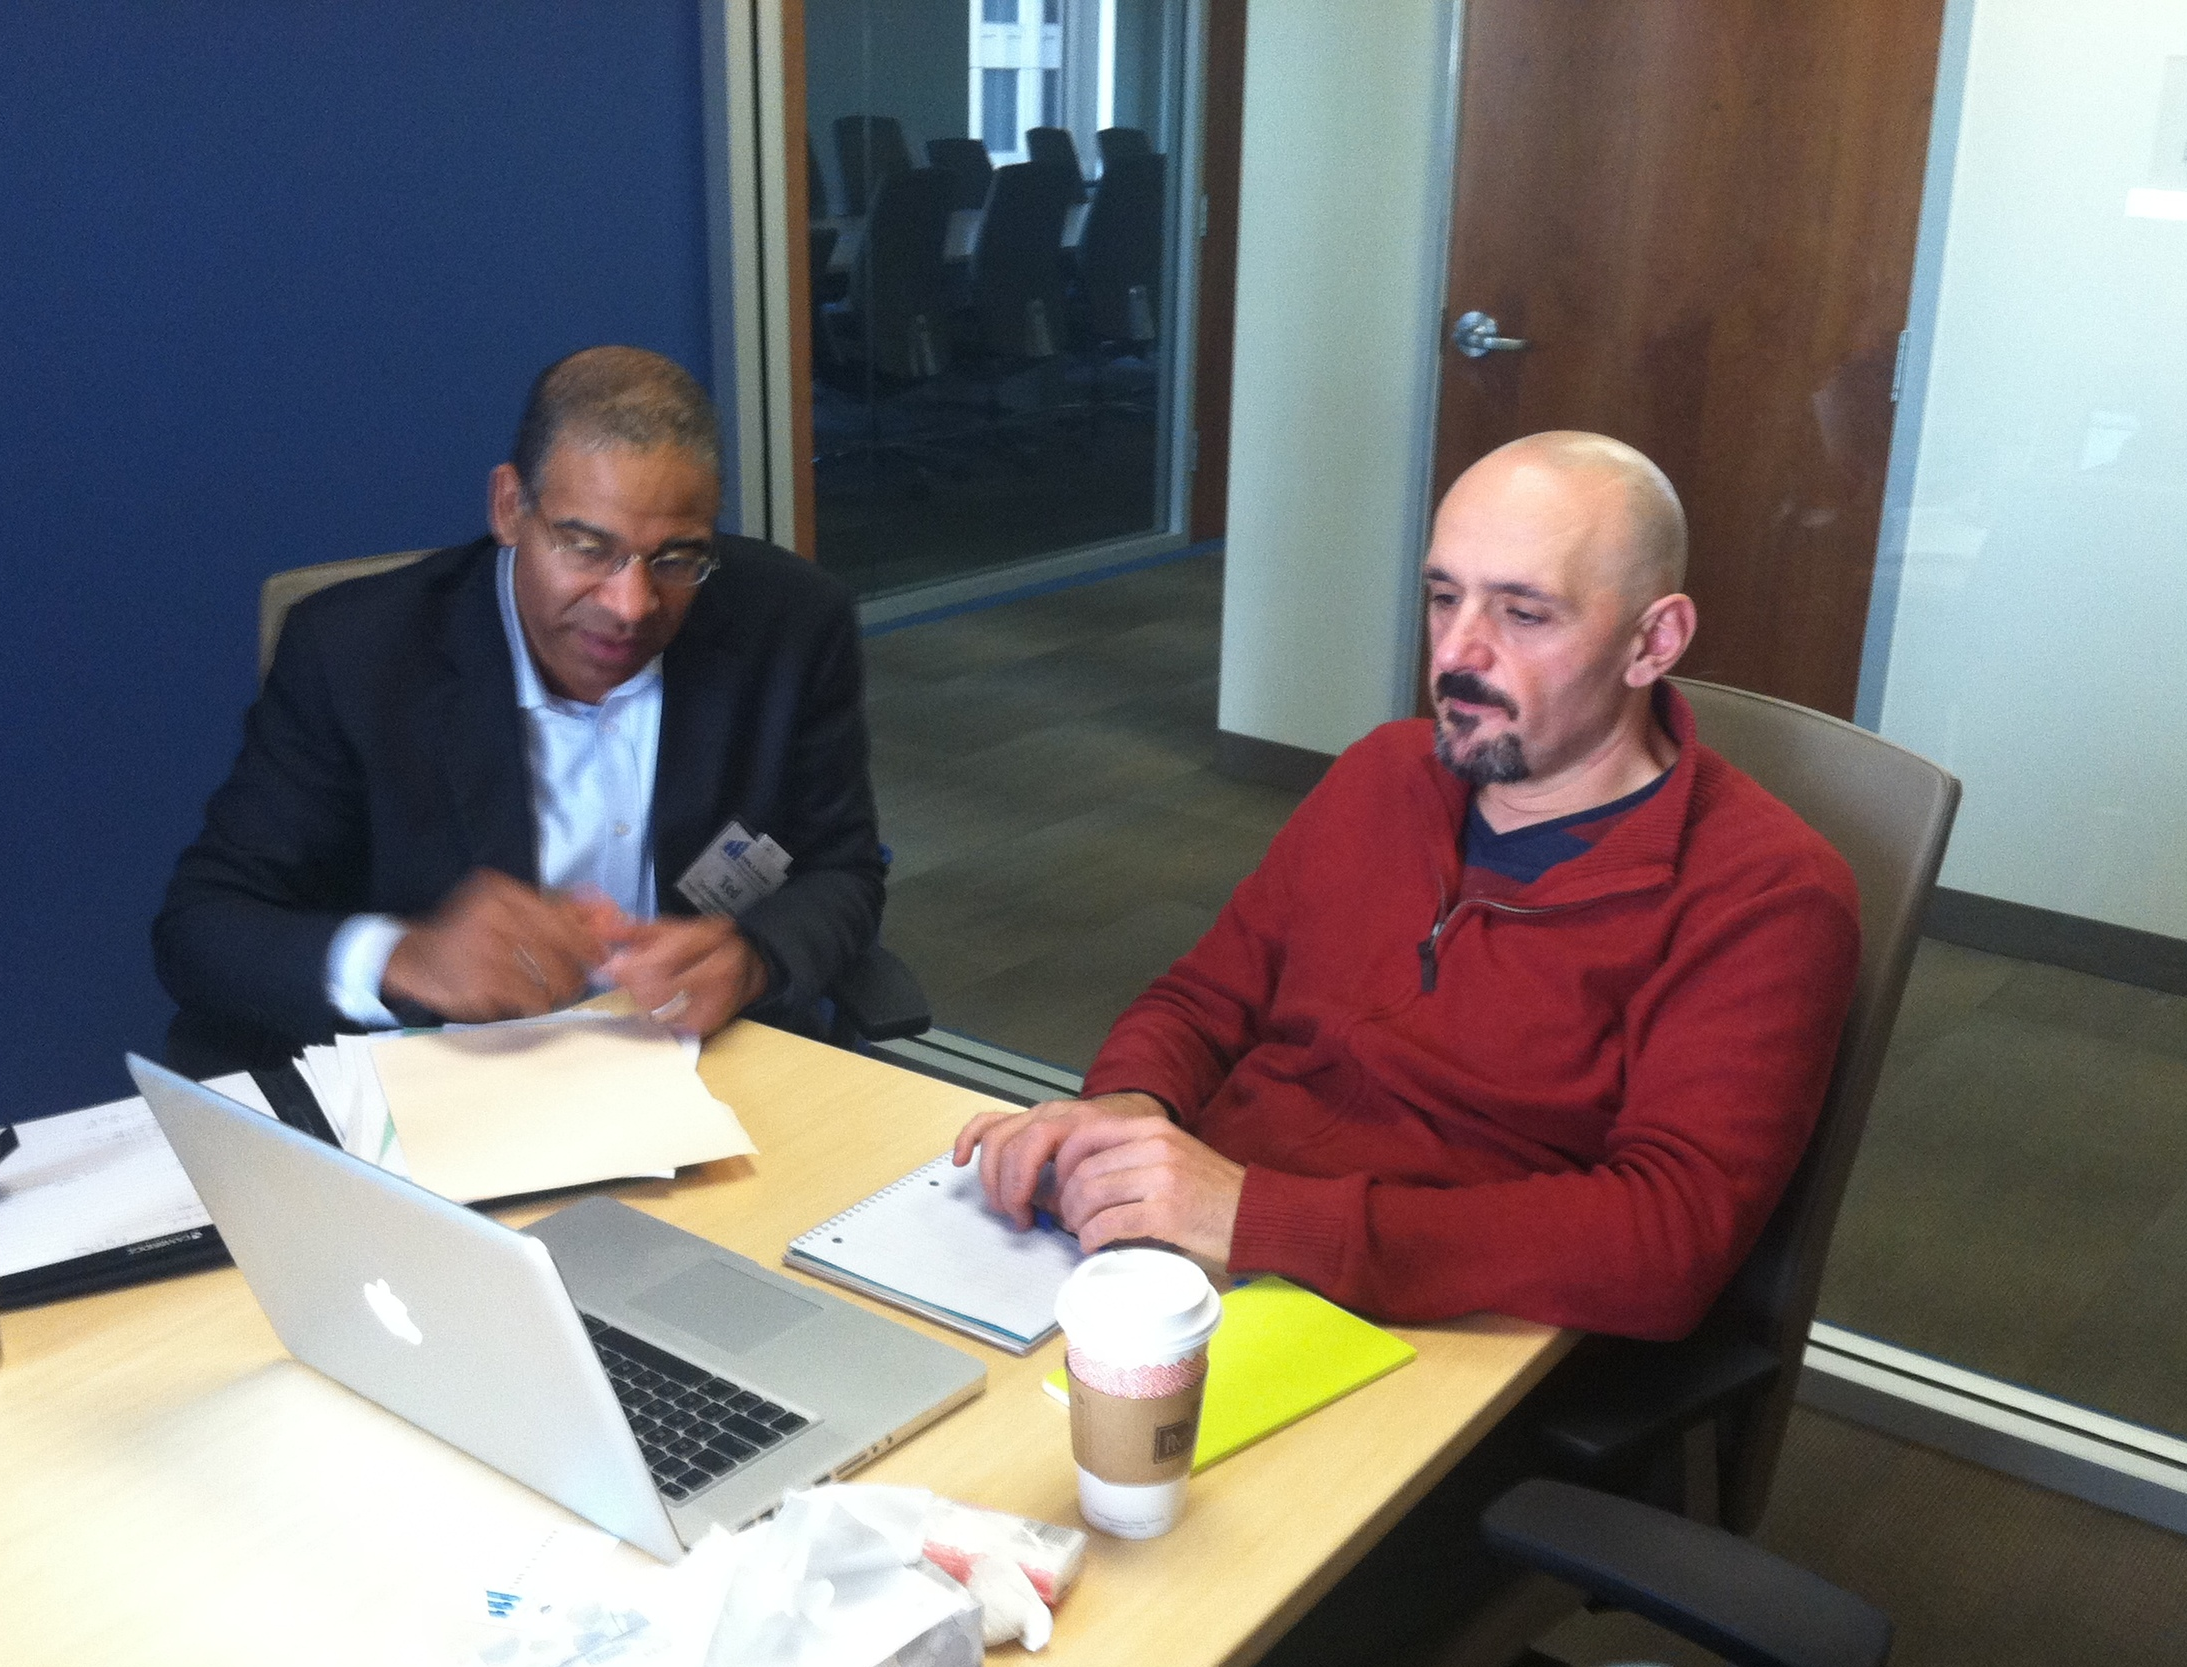 Ted Hilliard of Hilliard Management Group helps Working Solutions Client Ender Markal, owner of Richmond Republic Draught house,set up his Quickbooks Software